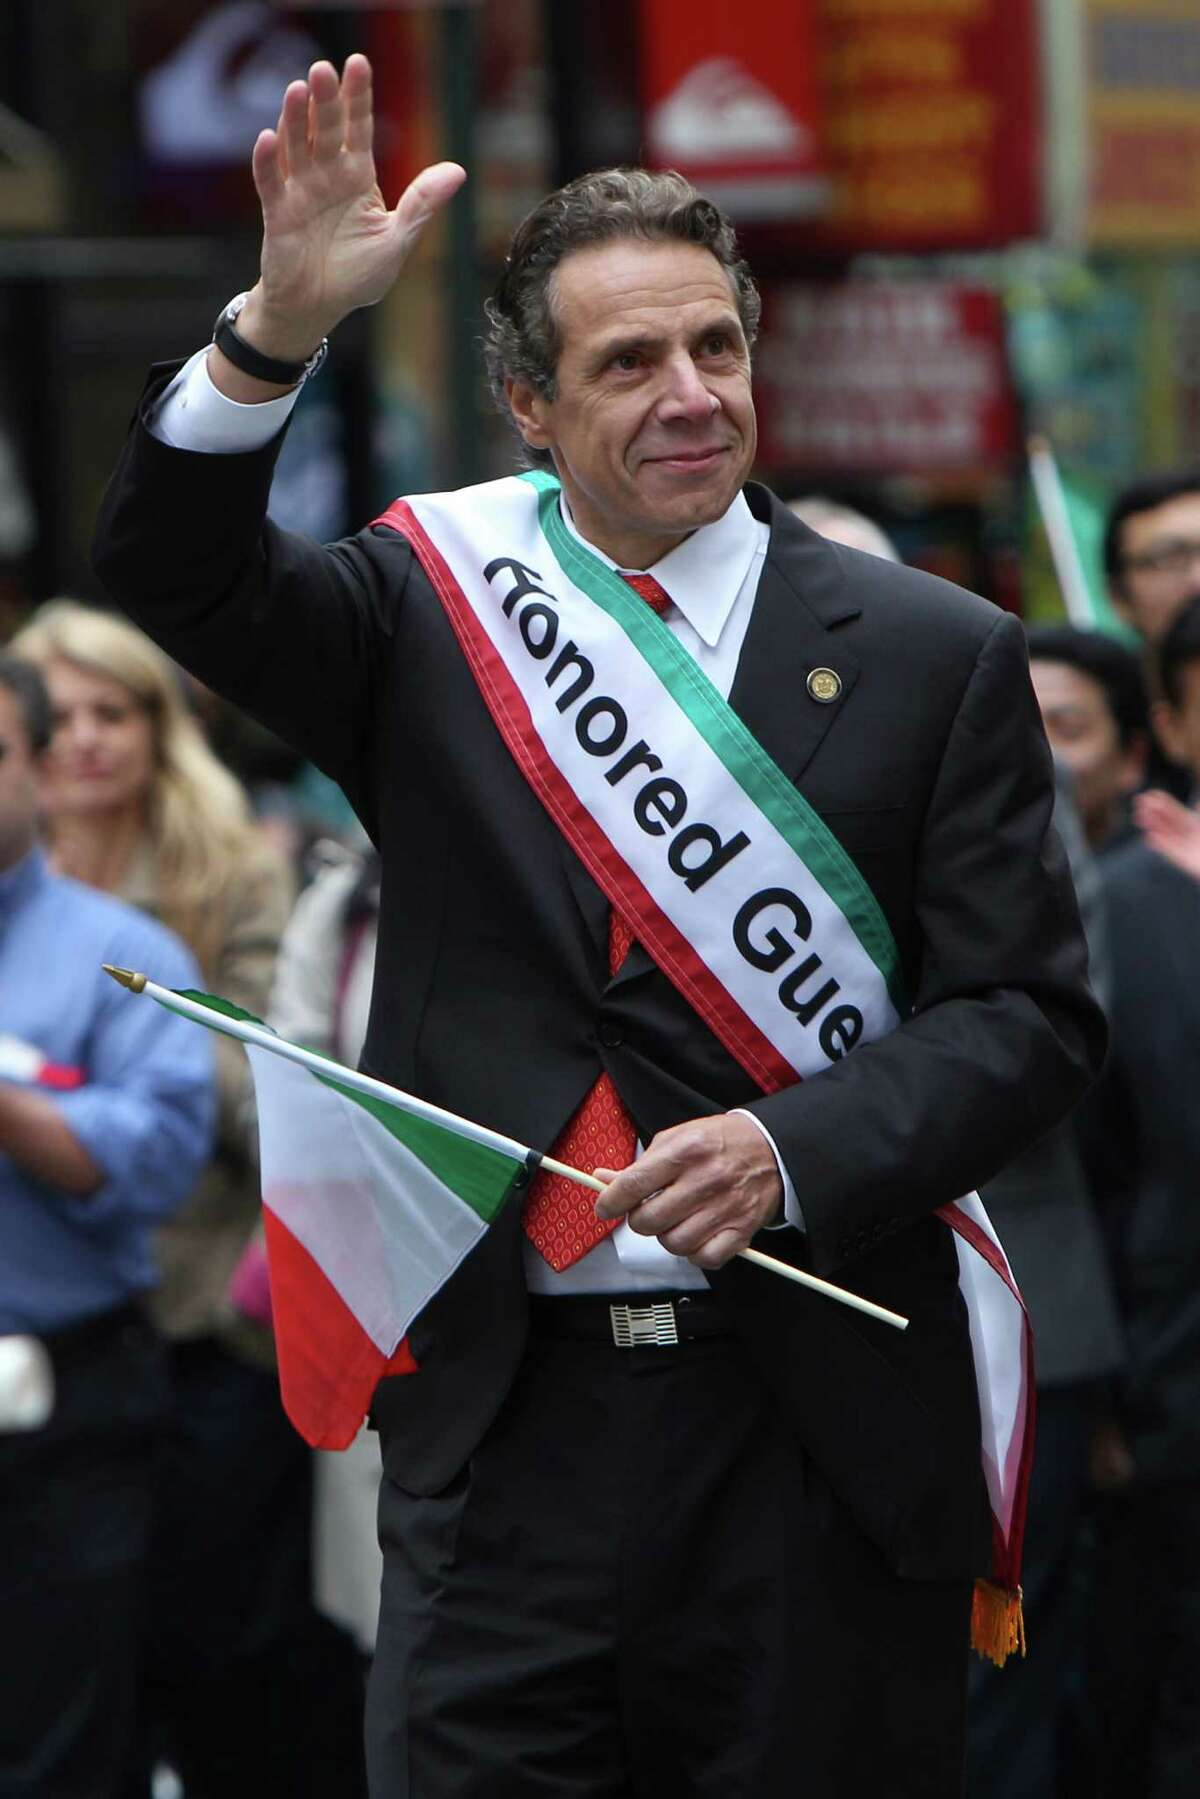 New York Governor Andrew Cuomo marches in the Columbus Day parade in New York, Monday, Oct. 8, 2012. (AP Photo/Seth Wenig)